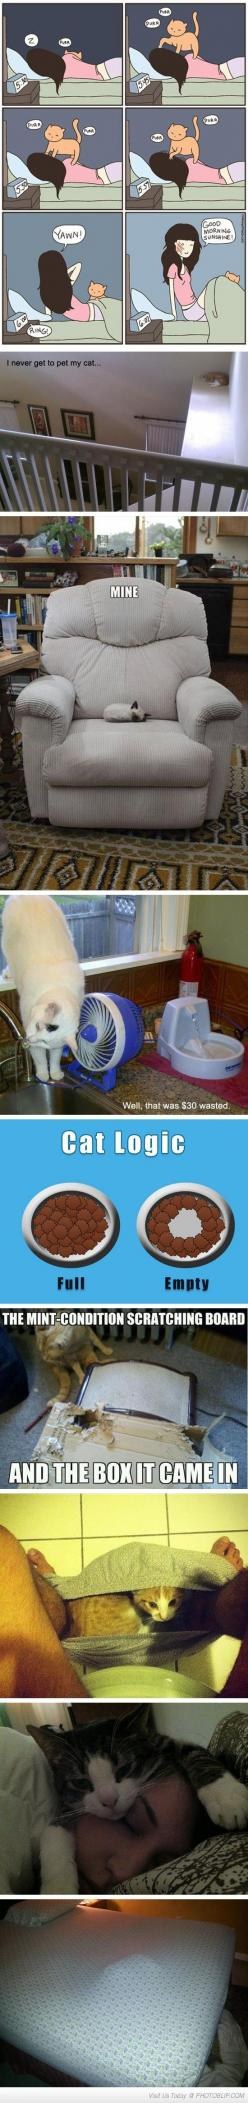 Uh oh. #cat #humor #cats #funny #lolcats #humour #meme #cute #quotes =^..^= www.zazzle.com/kittypretttgifts: Kitty Cats, Giggle, Funny Cat, Cat Logic, Crazy Cat, Funny Animal, Cat Lady